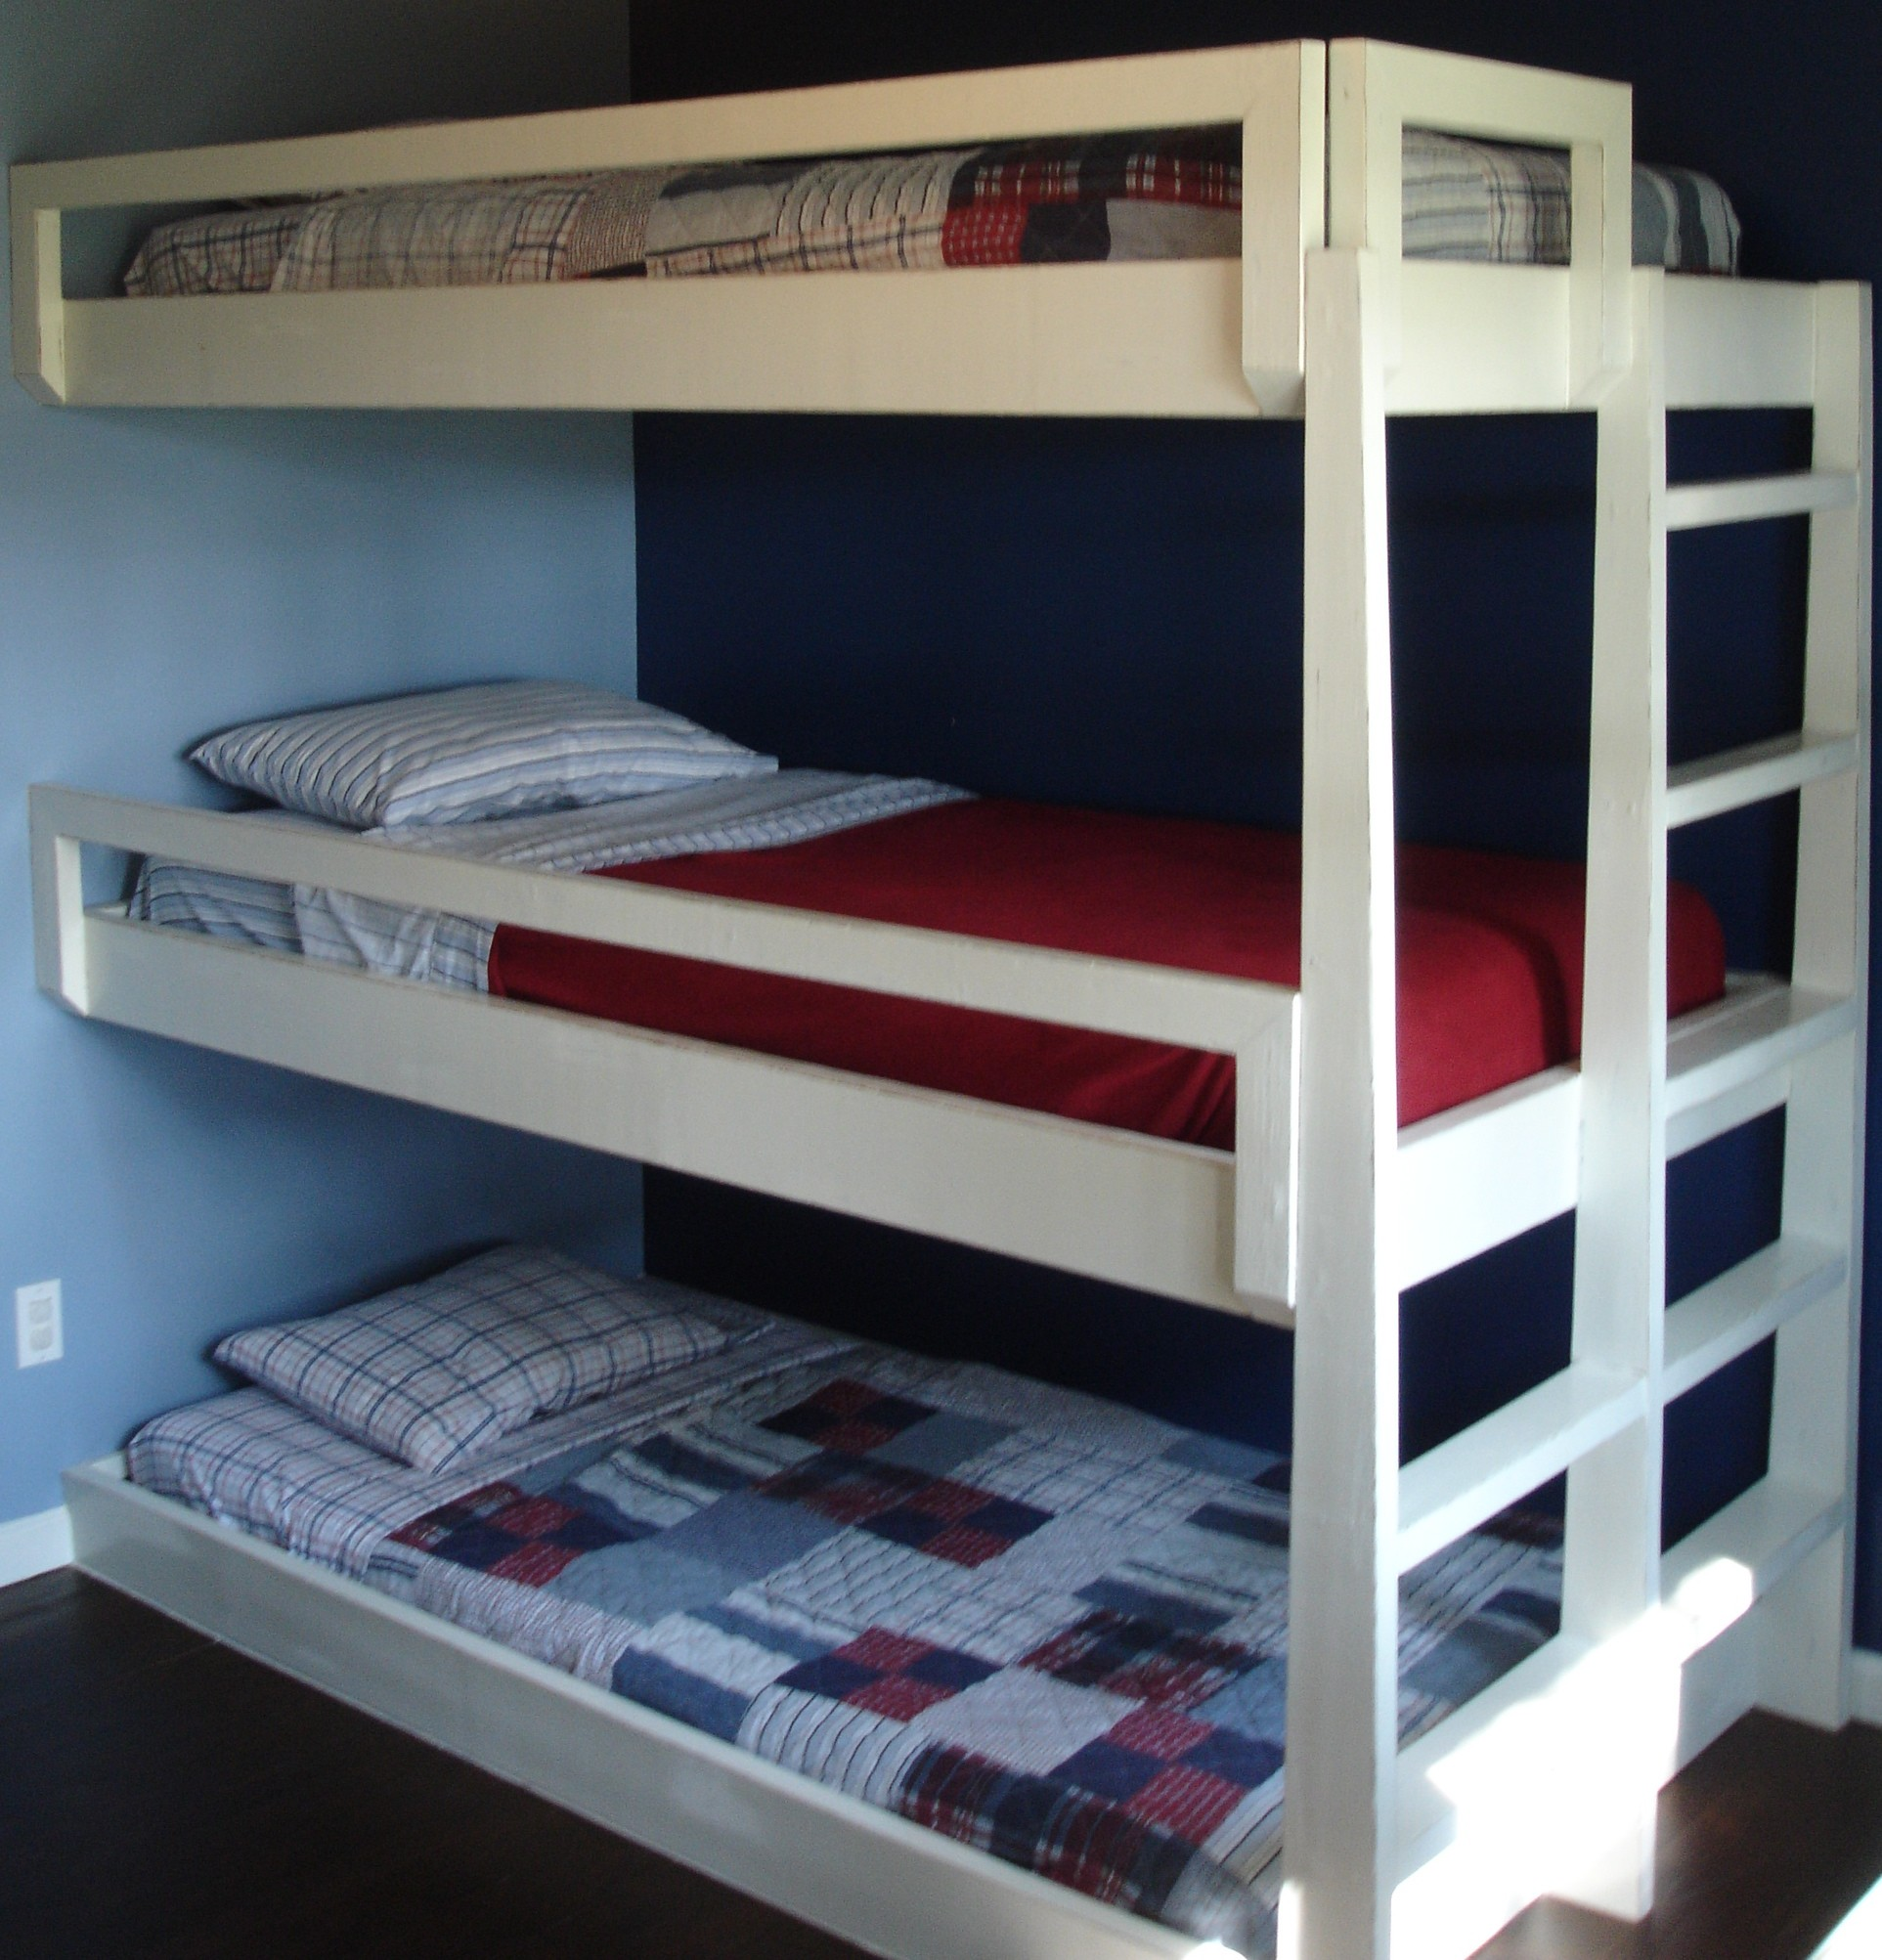 Triple Bunk Beds - Welcome to the Home of the Superhandyman!